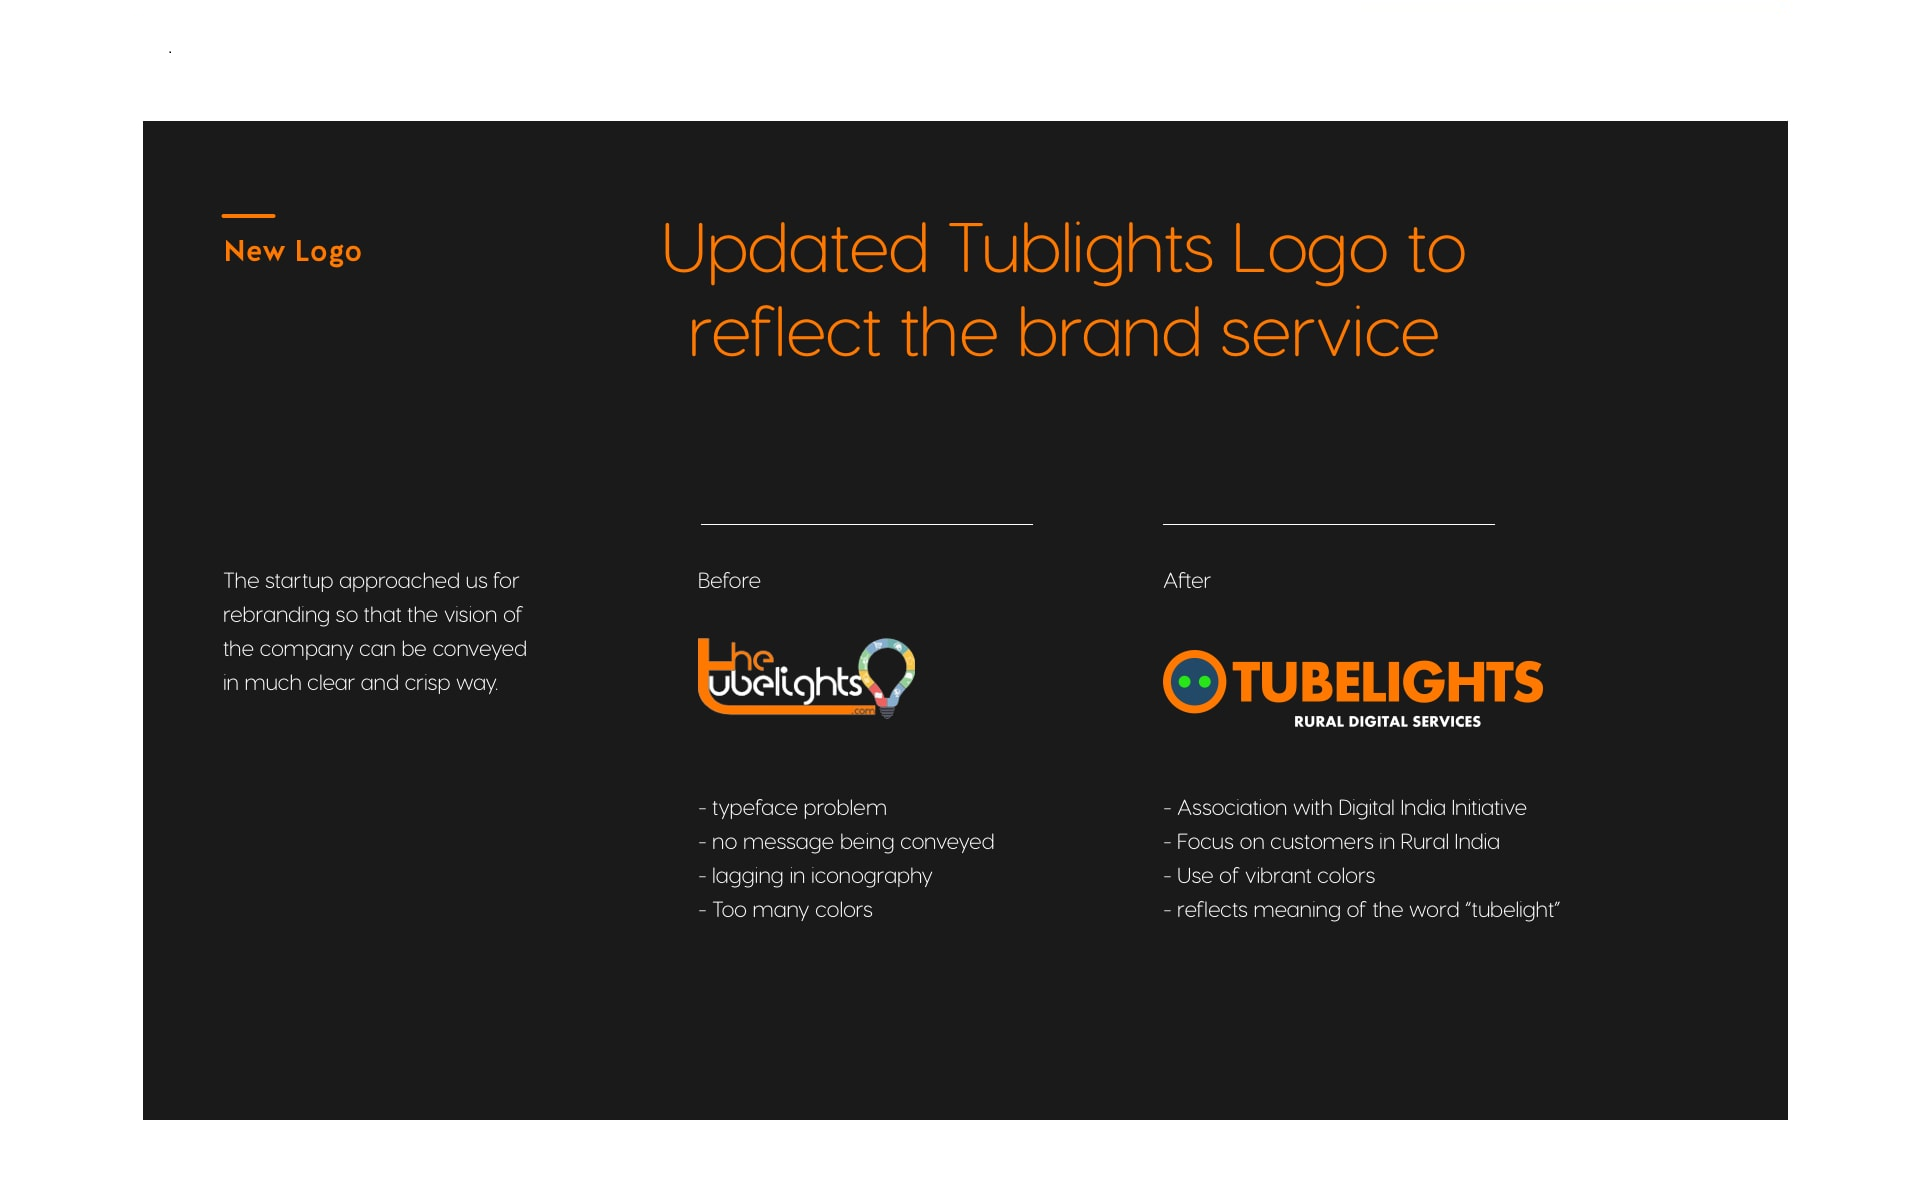 Updated tubelights logo to reflect the brand service.